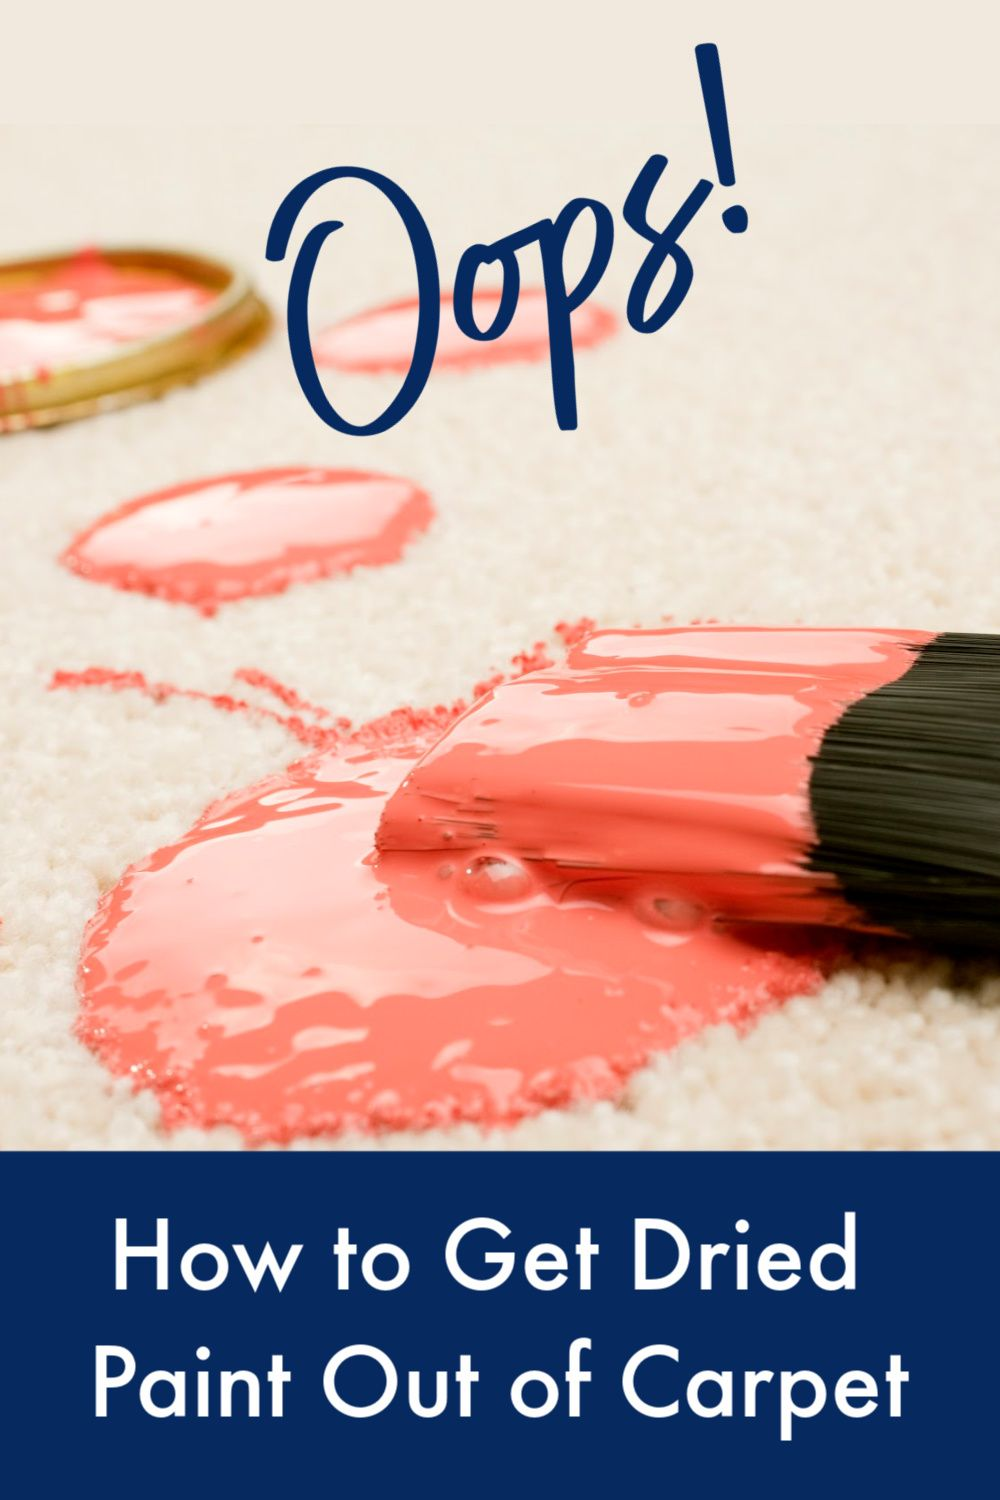 How to get dried paint out of carpet and other crazy